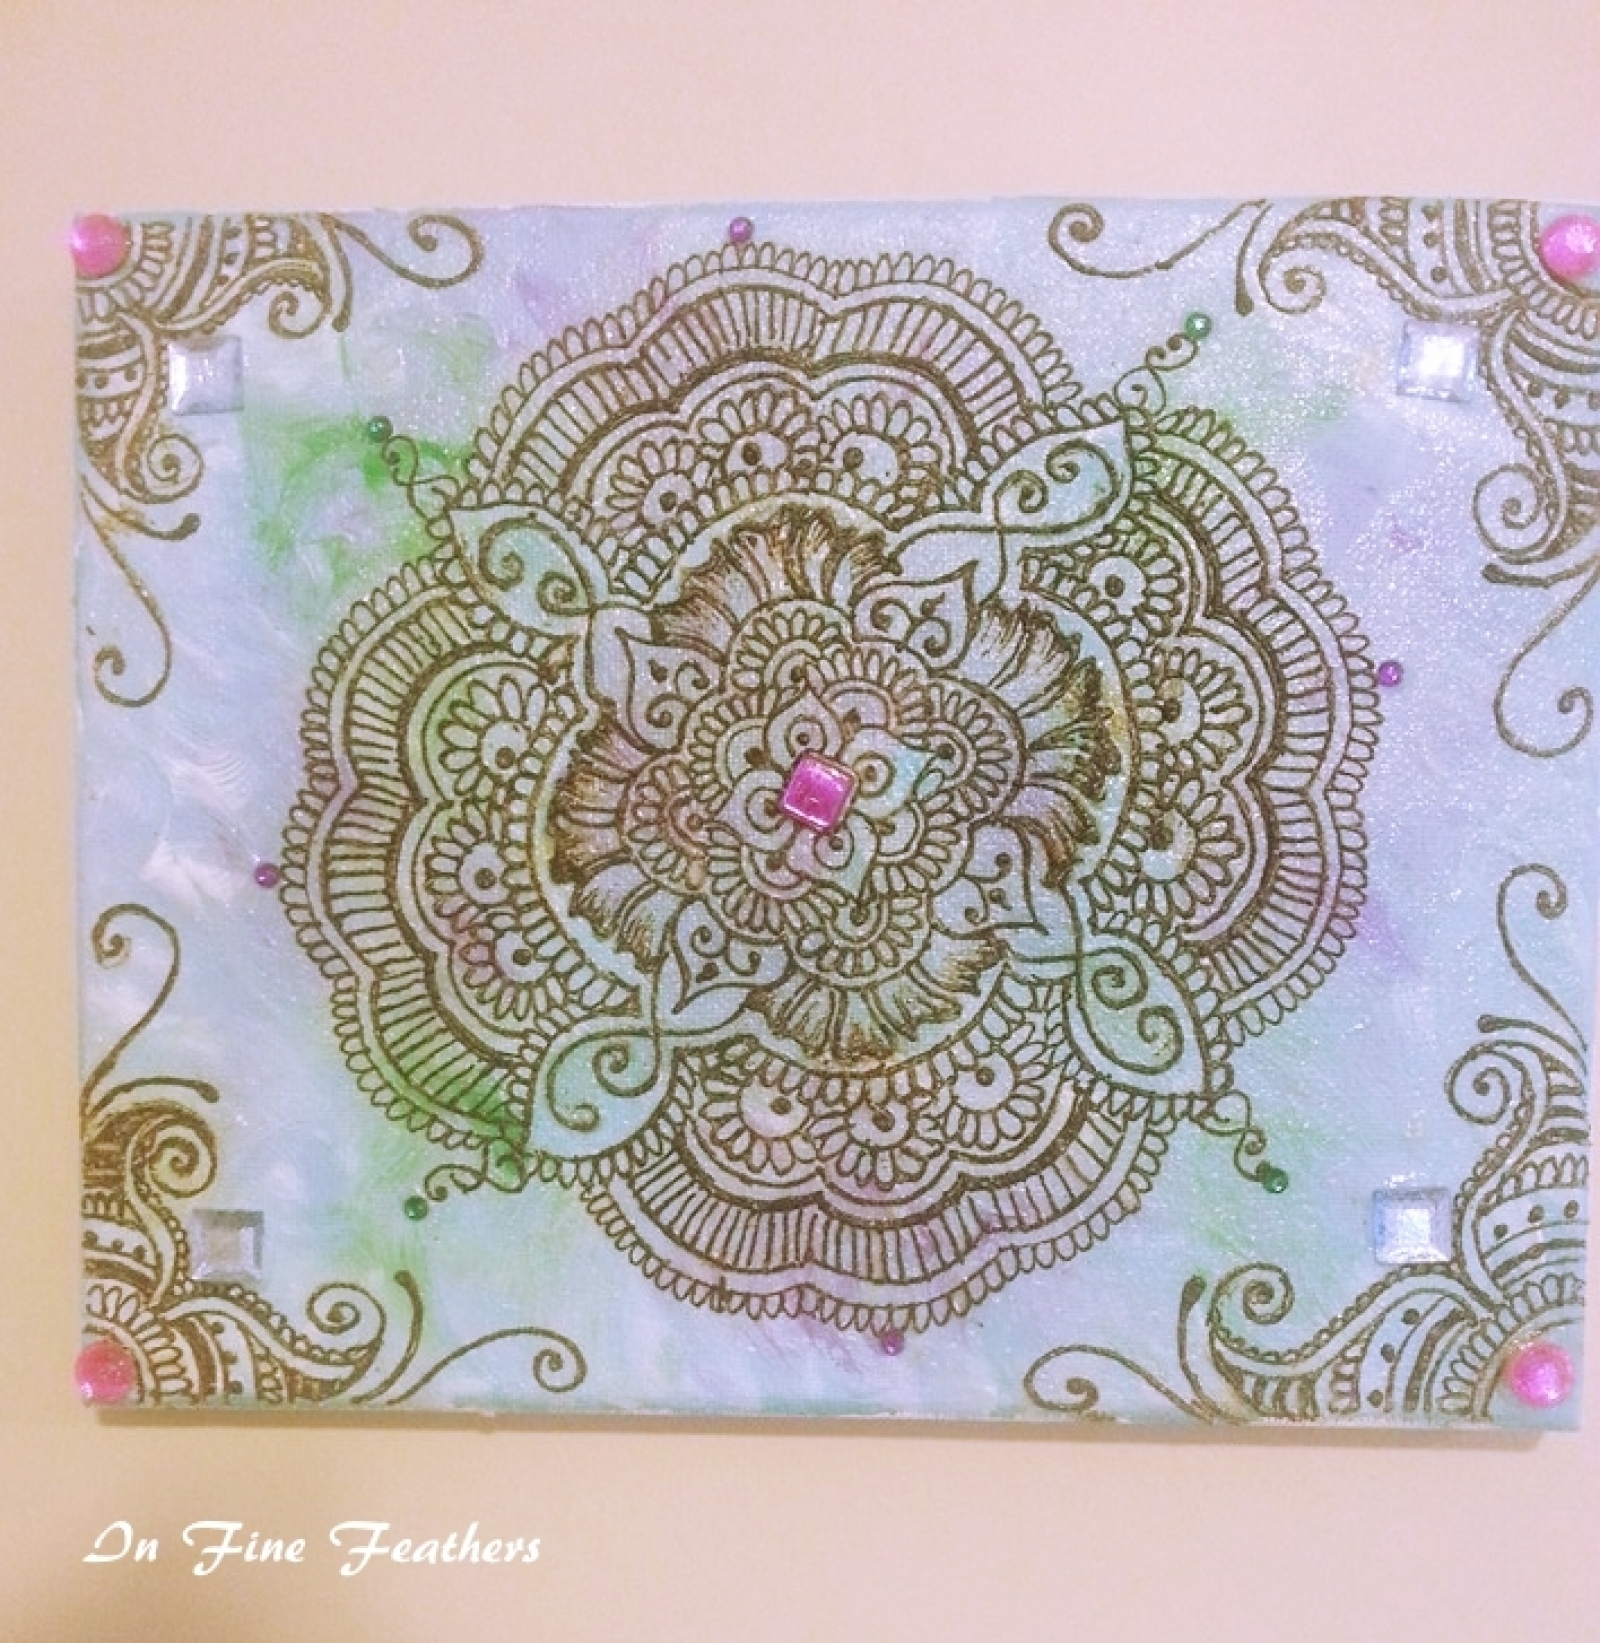 Henna Mandala Boho Chic Wall Art Yoga Studio Office Spring Decor With Regard To Most Recently Released Henna Wall Art (View 6 of 20)